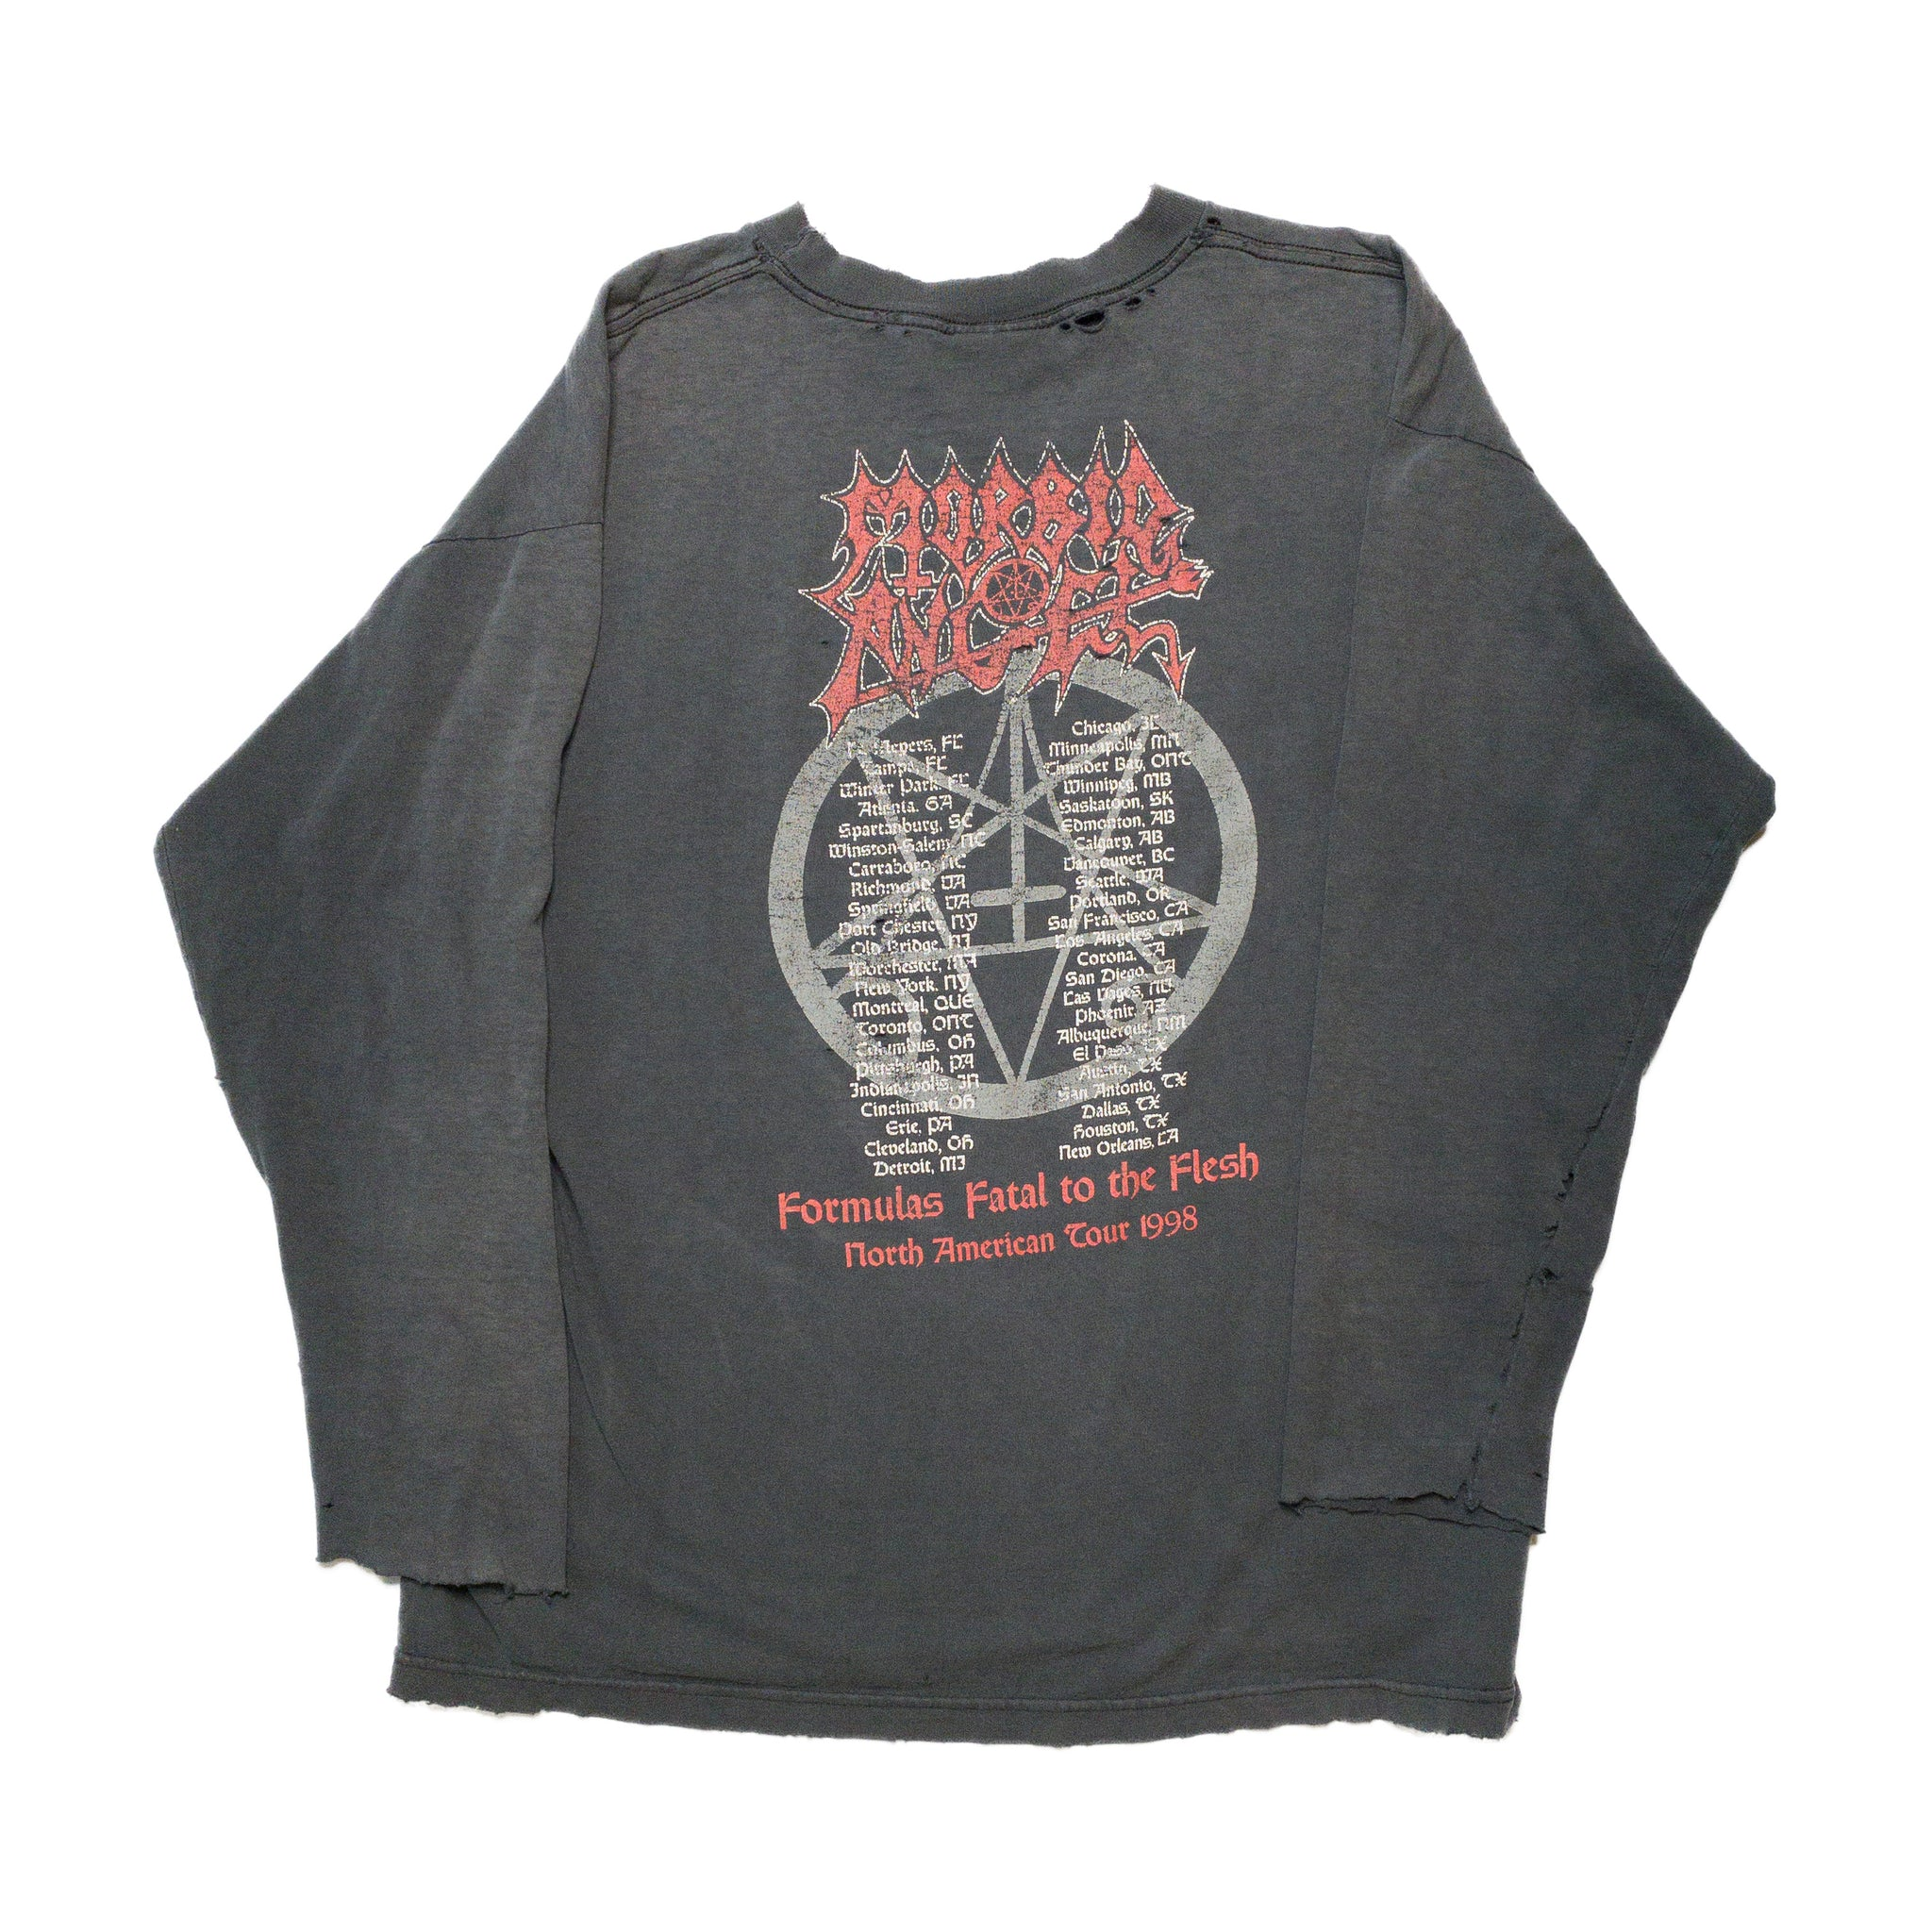 1998 Morbid Angel Come Dance With Me Tour THRASHED Long Sleeve Vintage T-Shirt